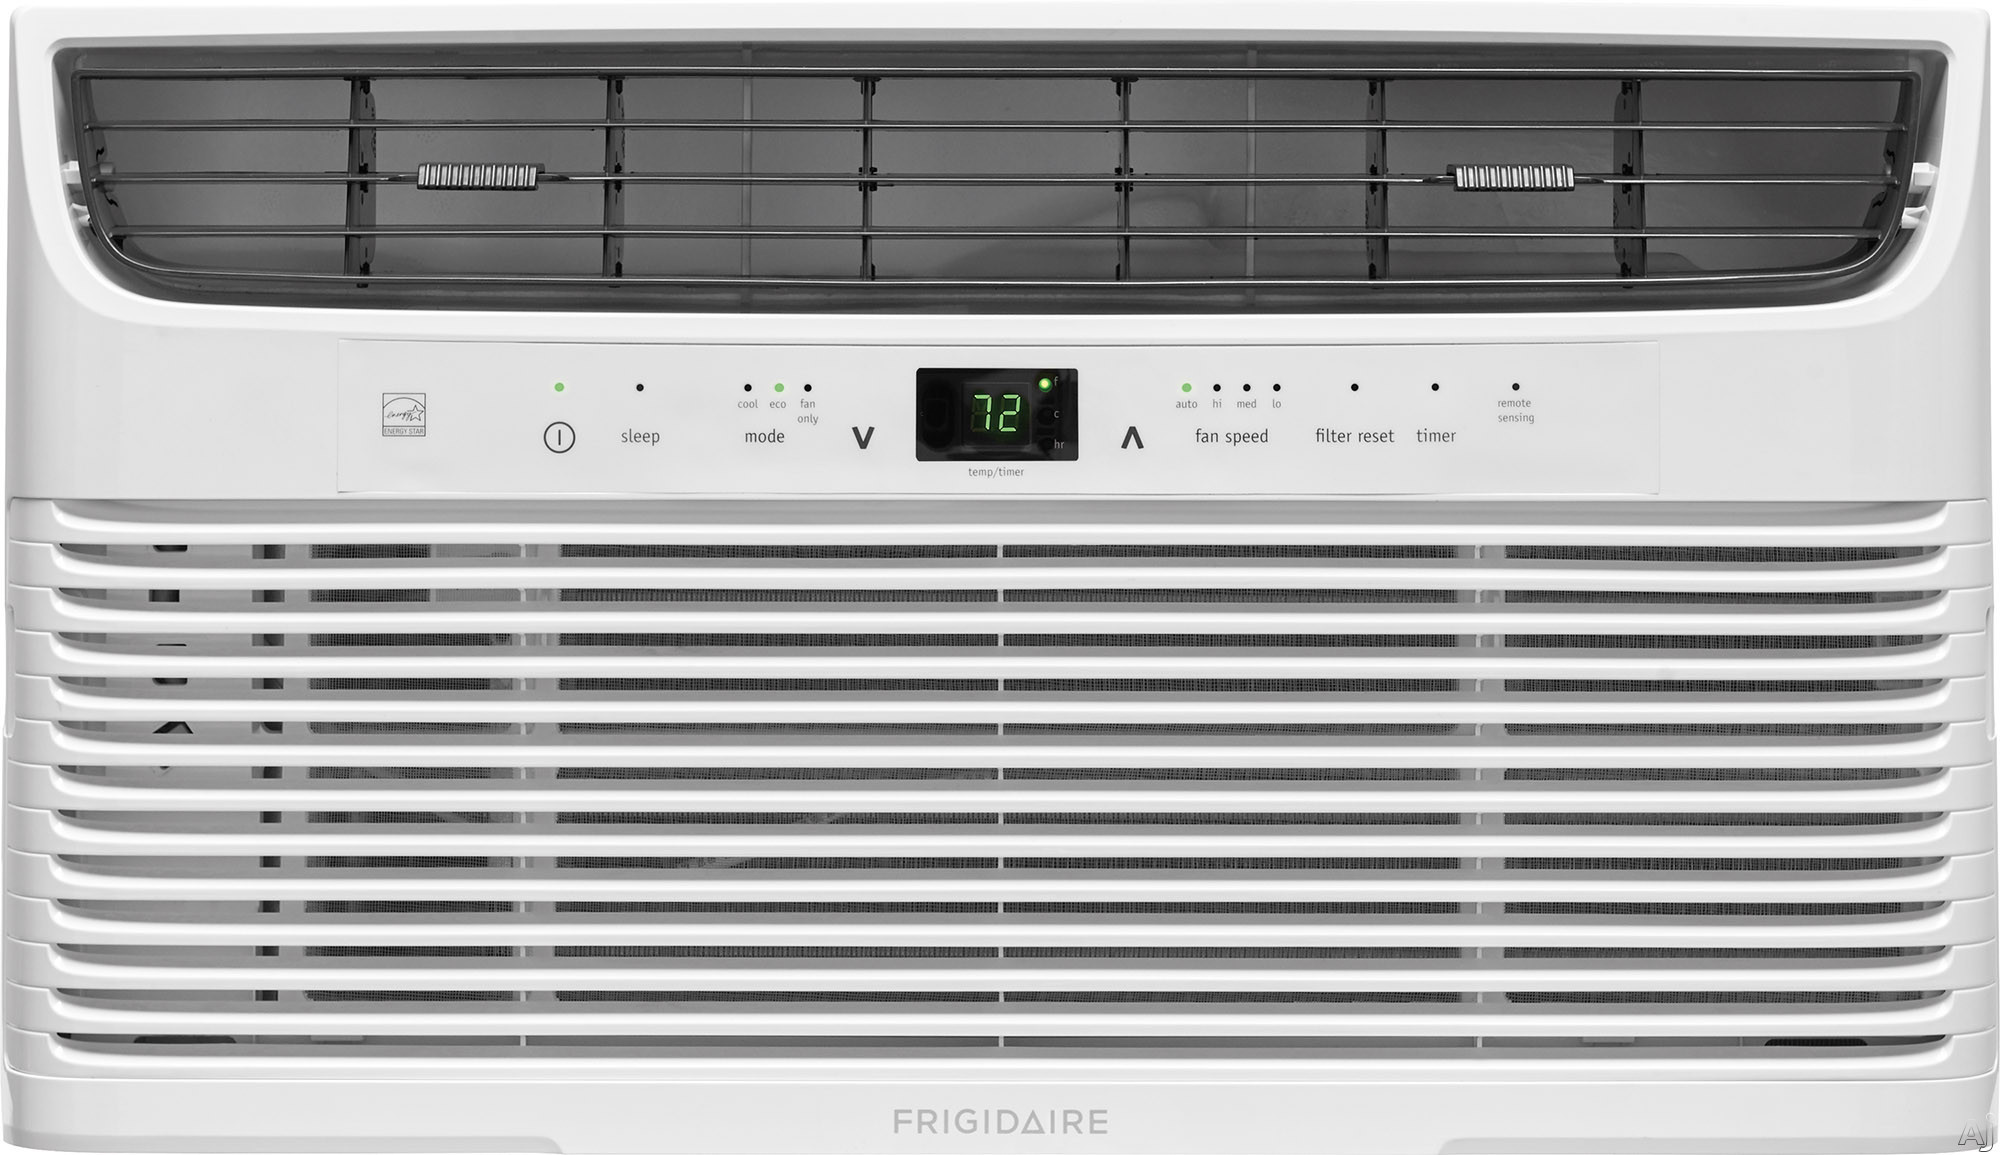 Frigidaire FFRE0833U1 8,000 BTU Room Air Conditioner with Effortless™ Temperature Control, Programmable 24-Hour Timer, Effortless™ Clean Filter, Effortless™ Restart, SpaceWise® Ad